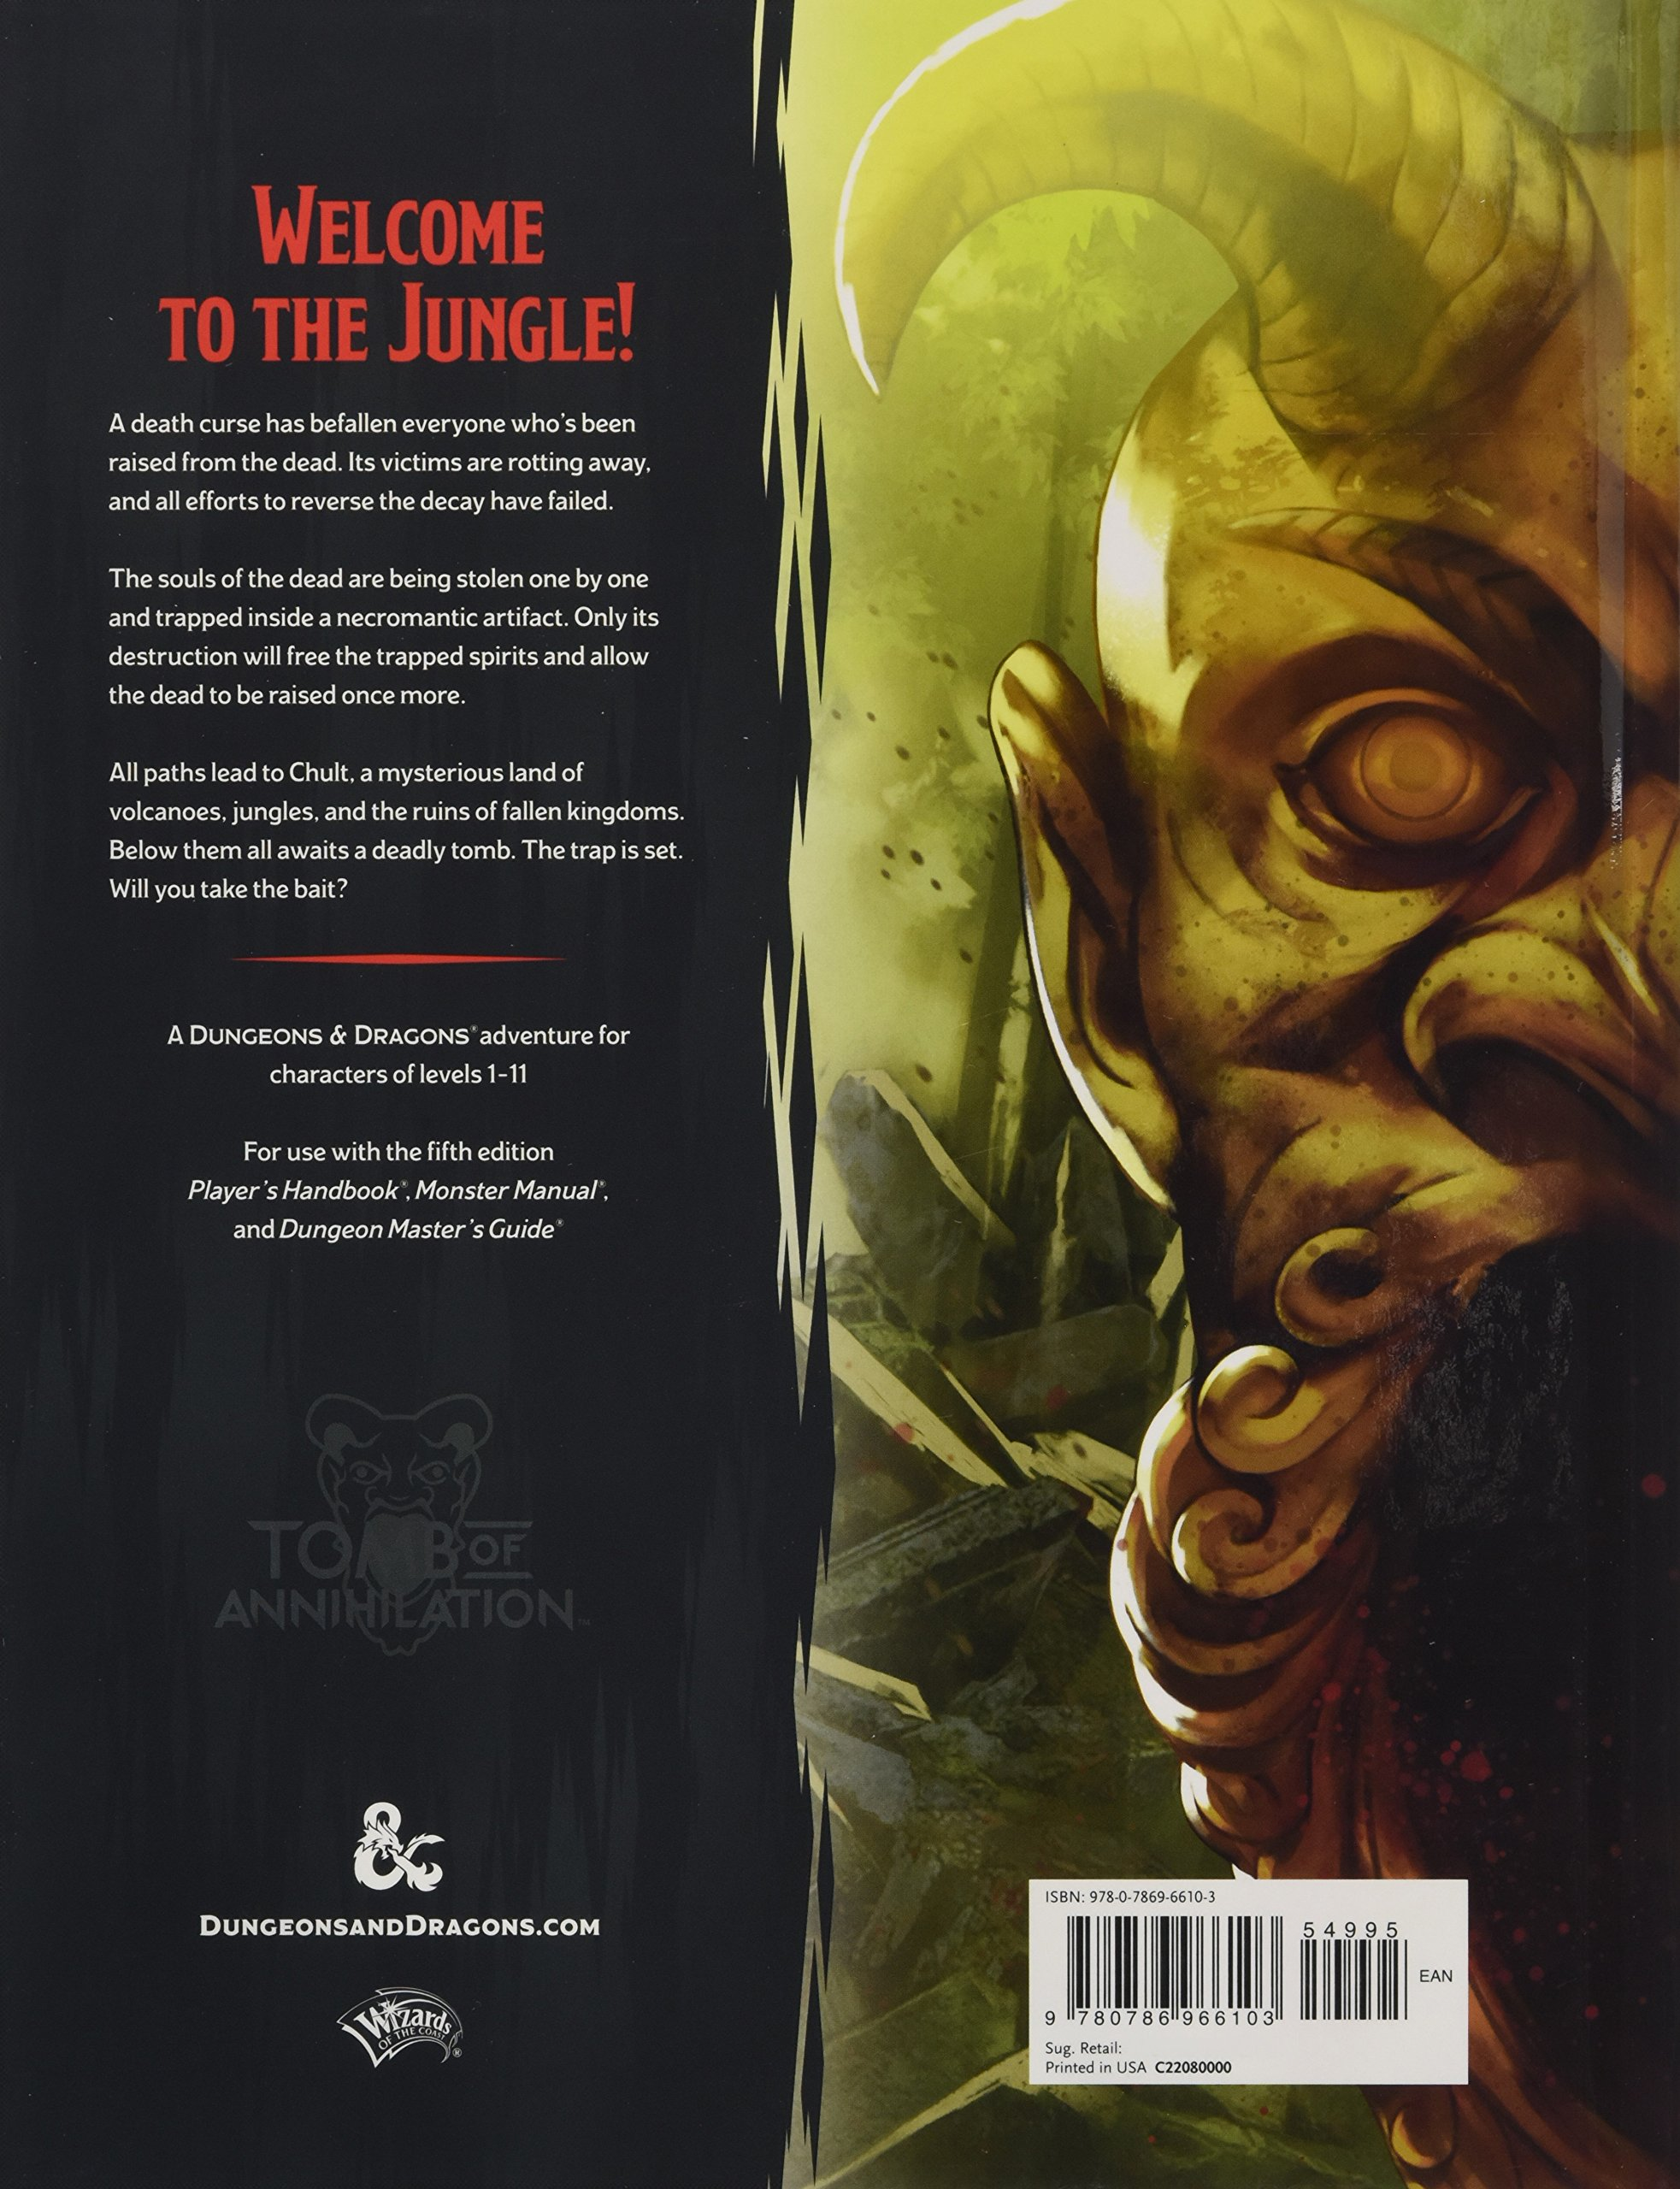 Tomb of annihilation dungeons dragons wizards rpg team tomb of annihilation dungeons dragons wizards rpg team 9780786966103 amazon books fandeluxe Gallery